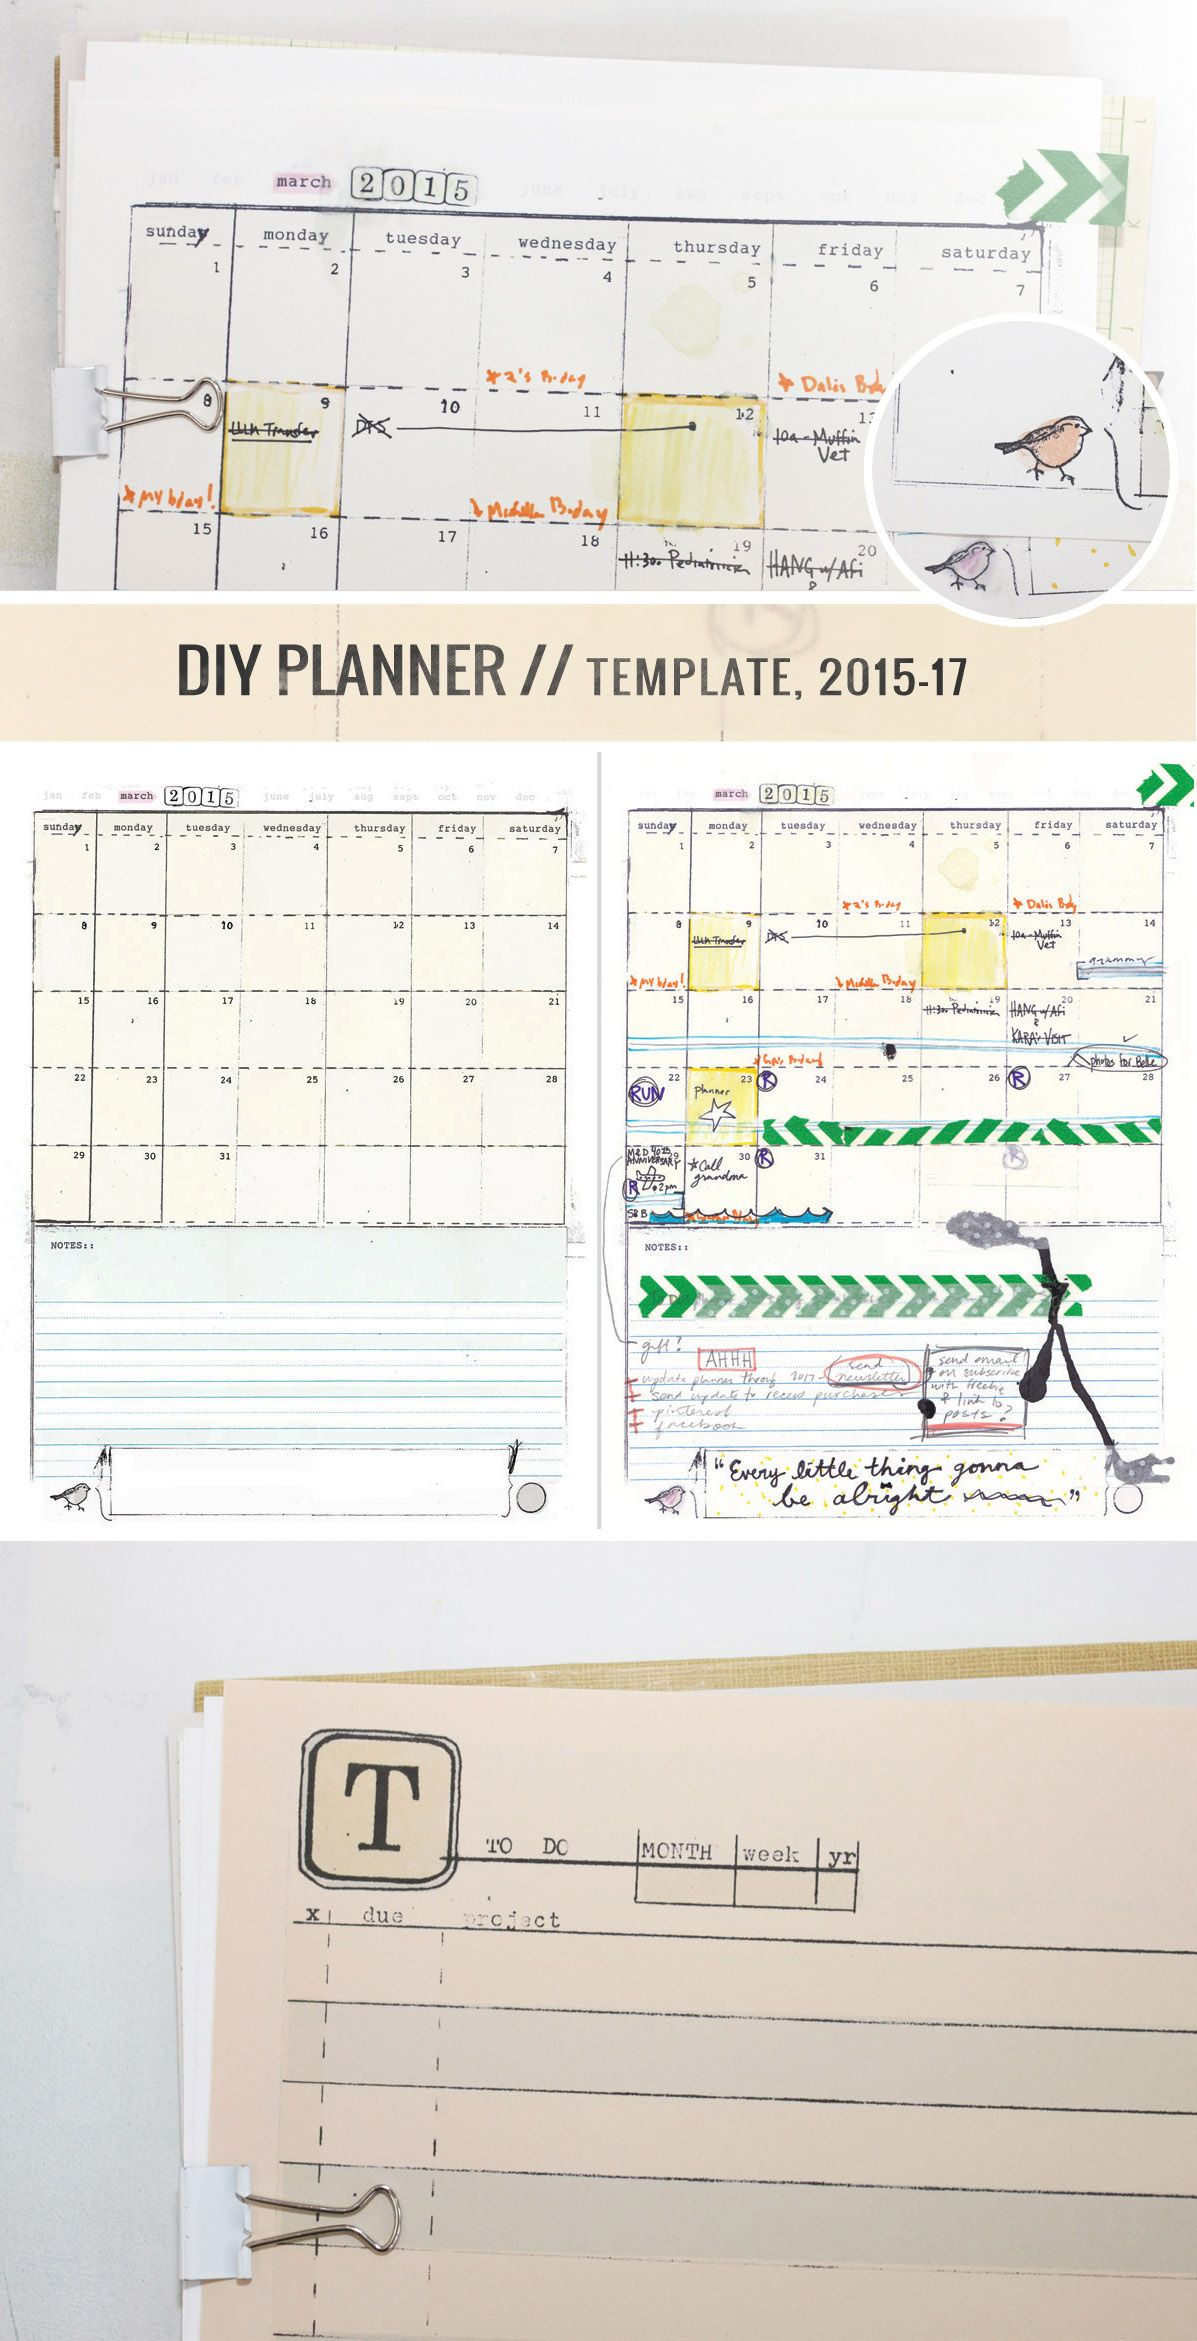 Make Your Own Awesome Planner, Yeah! #diyplanner | Do It throughout Doodle Monthly Planner Printer Templates